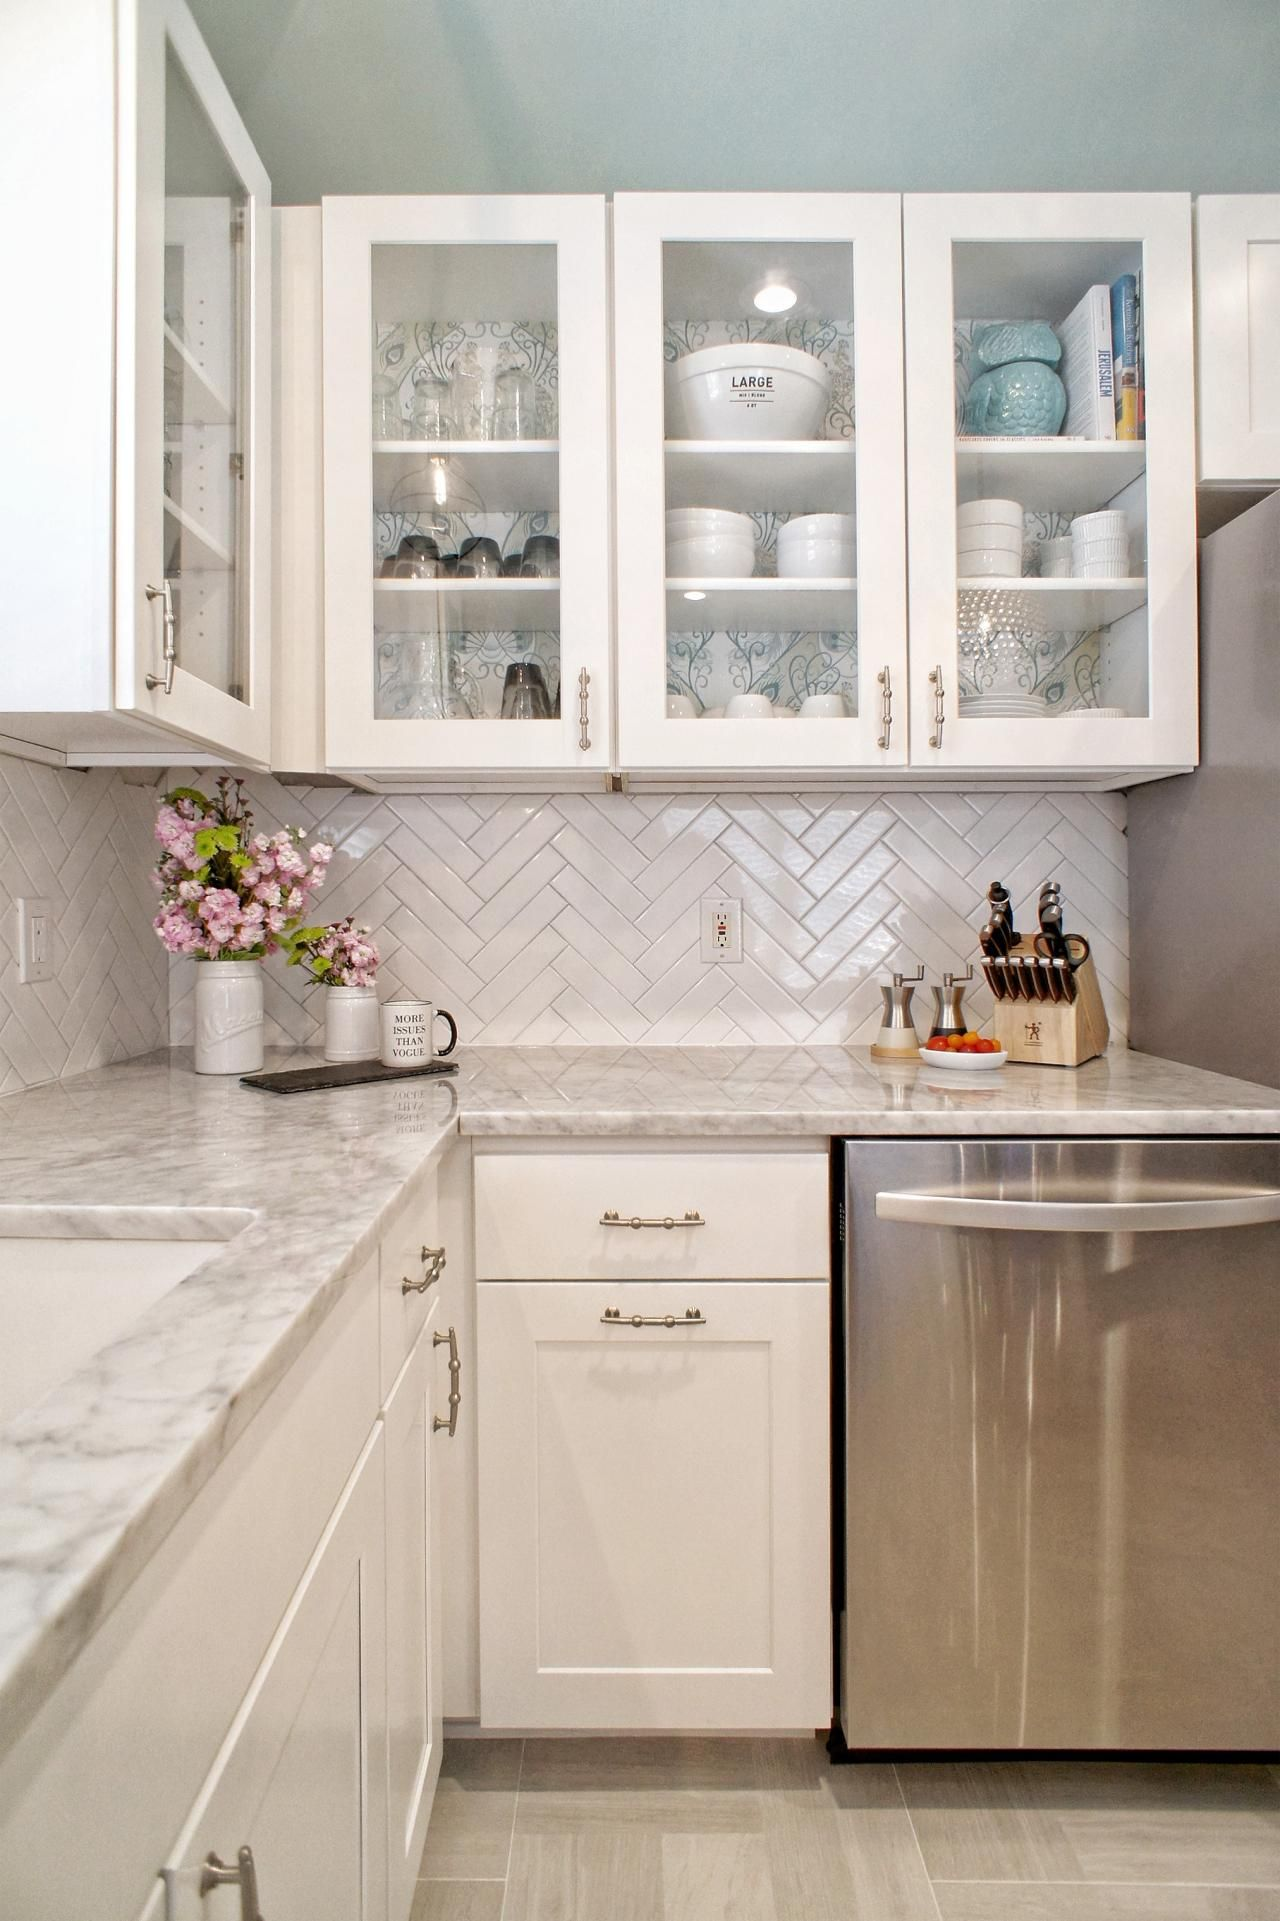 Subway tiles a love story in kitchen inspiration pinterest